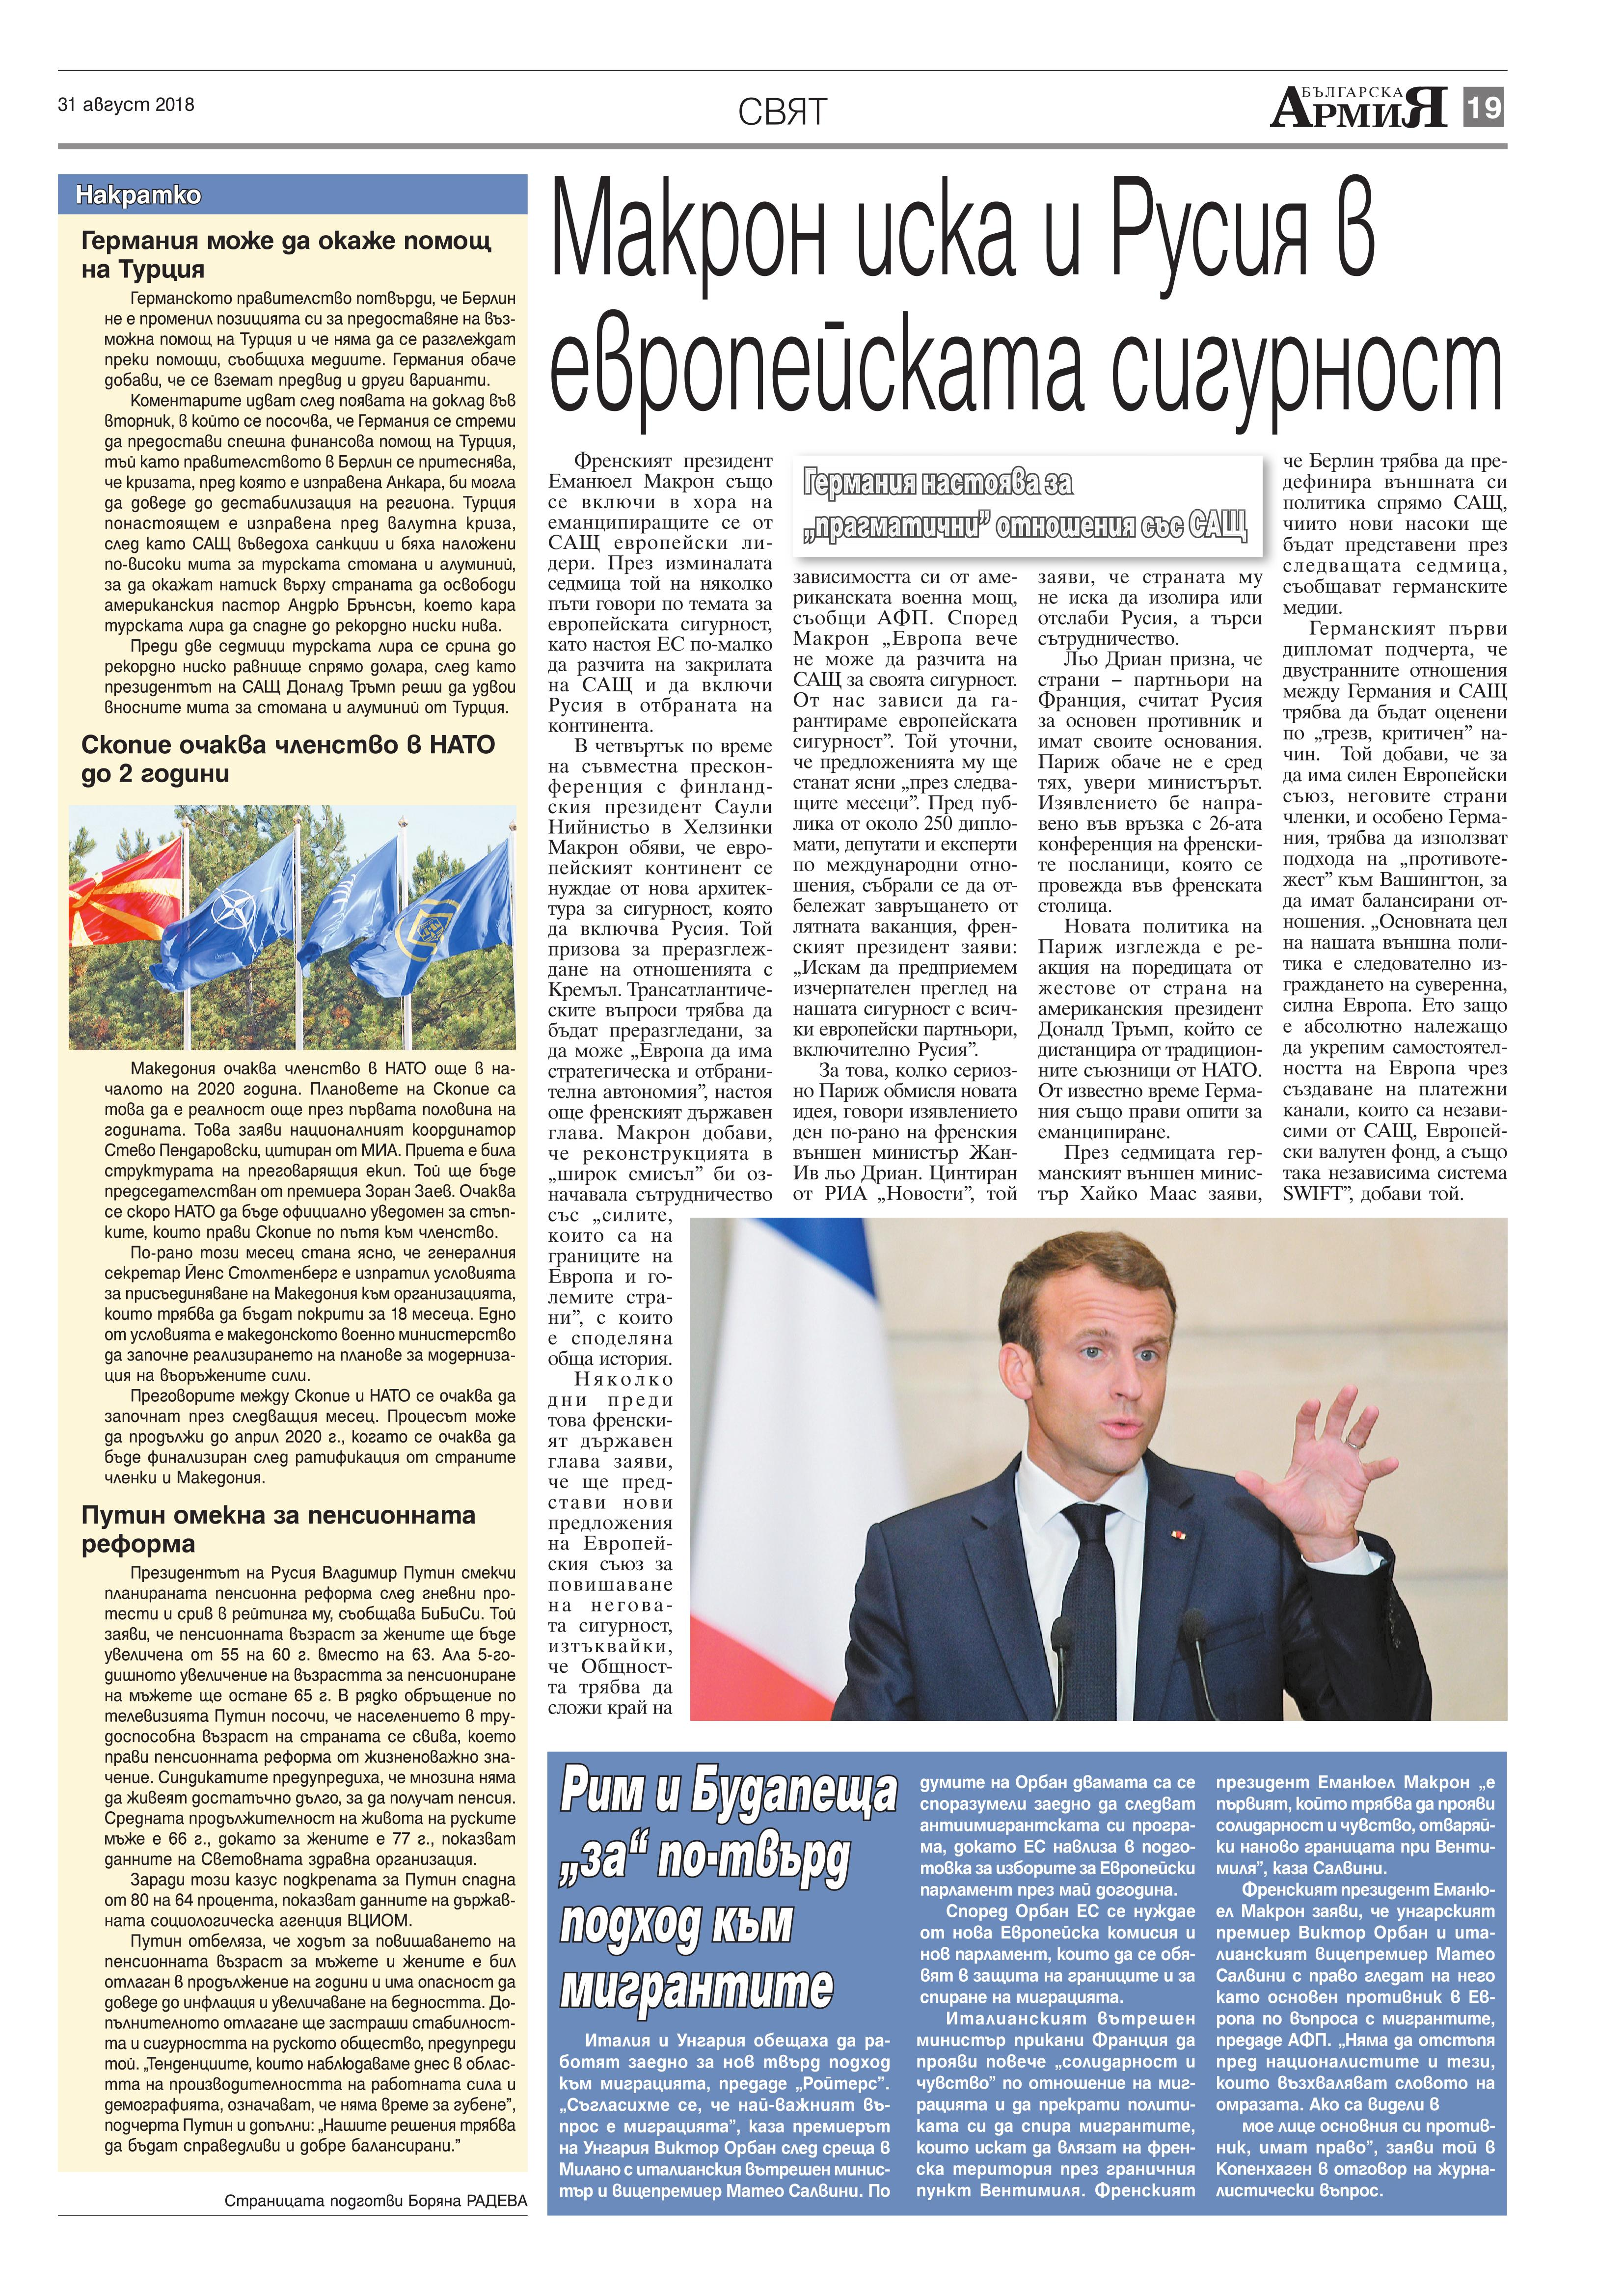 https://armymedia.bg/wp-content/uploads/2015/06/19.page1_-64.jpg